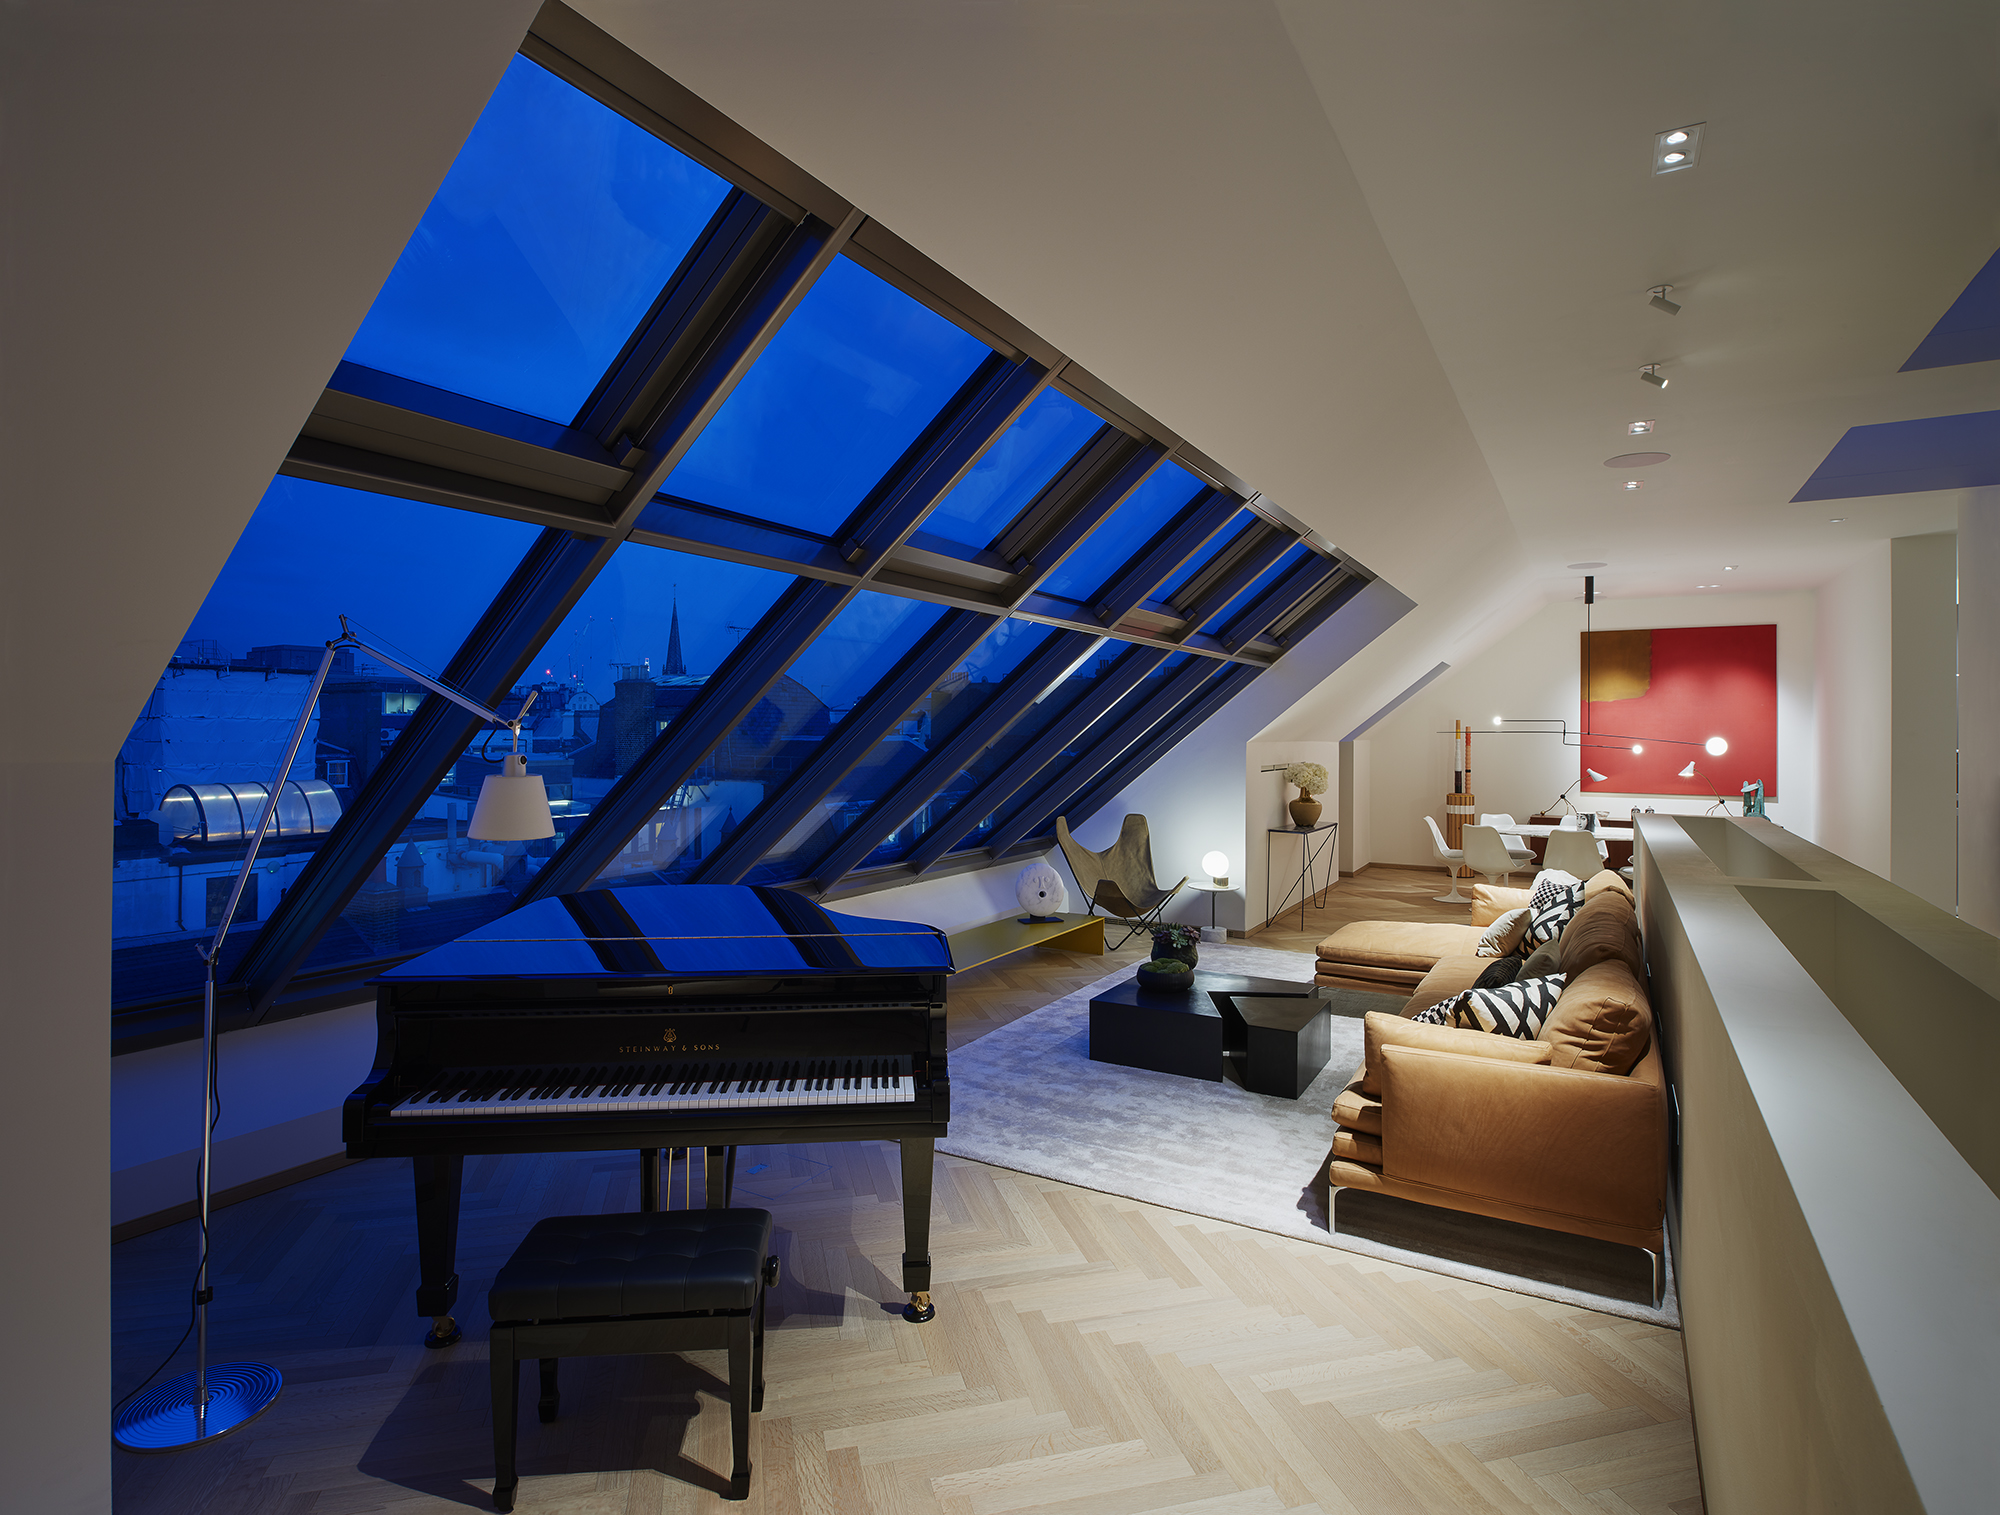 A Steinway piano in the music room of the penthouse.